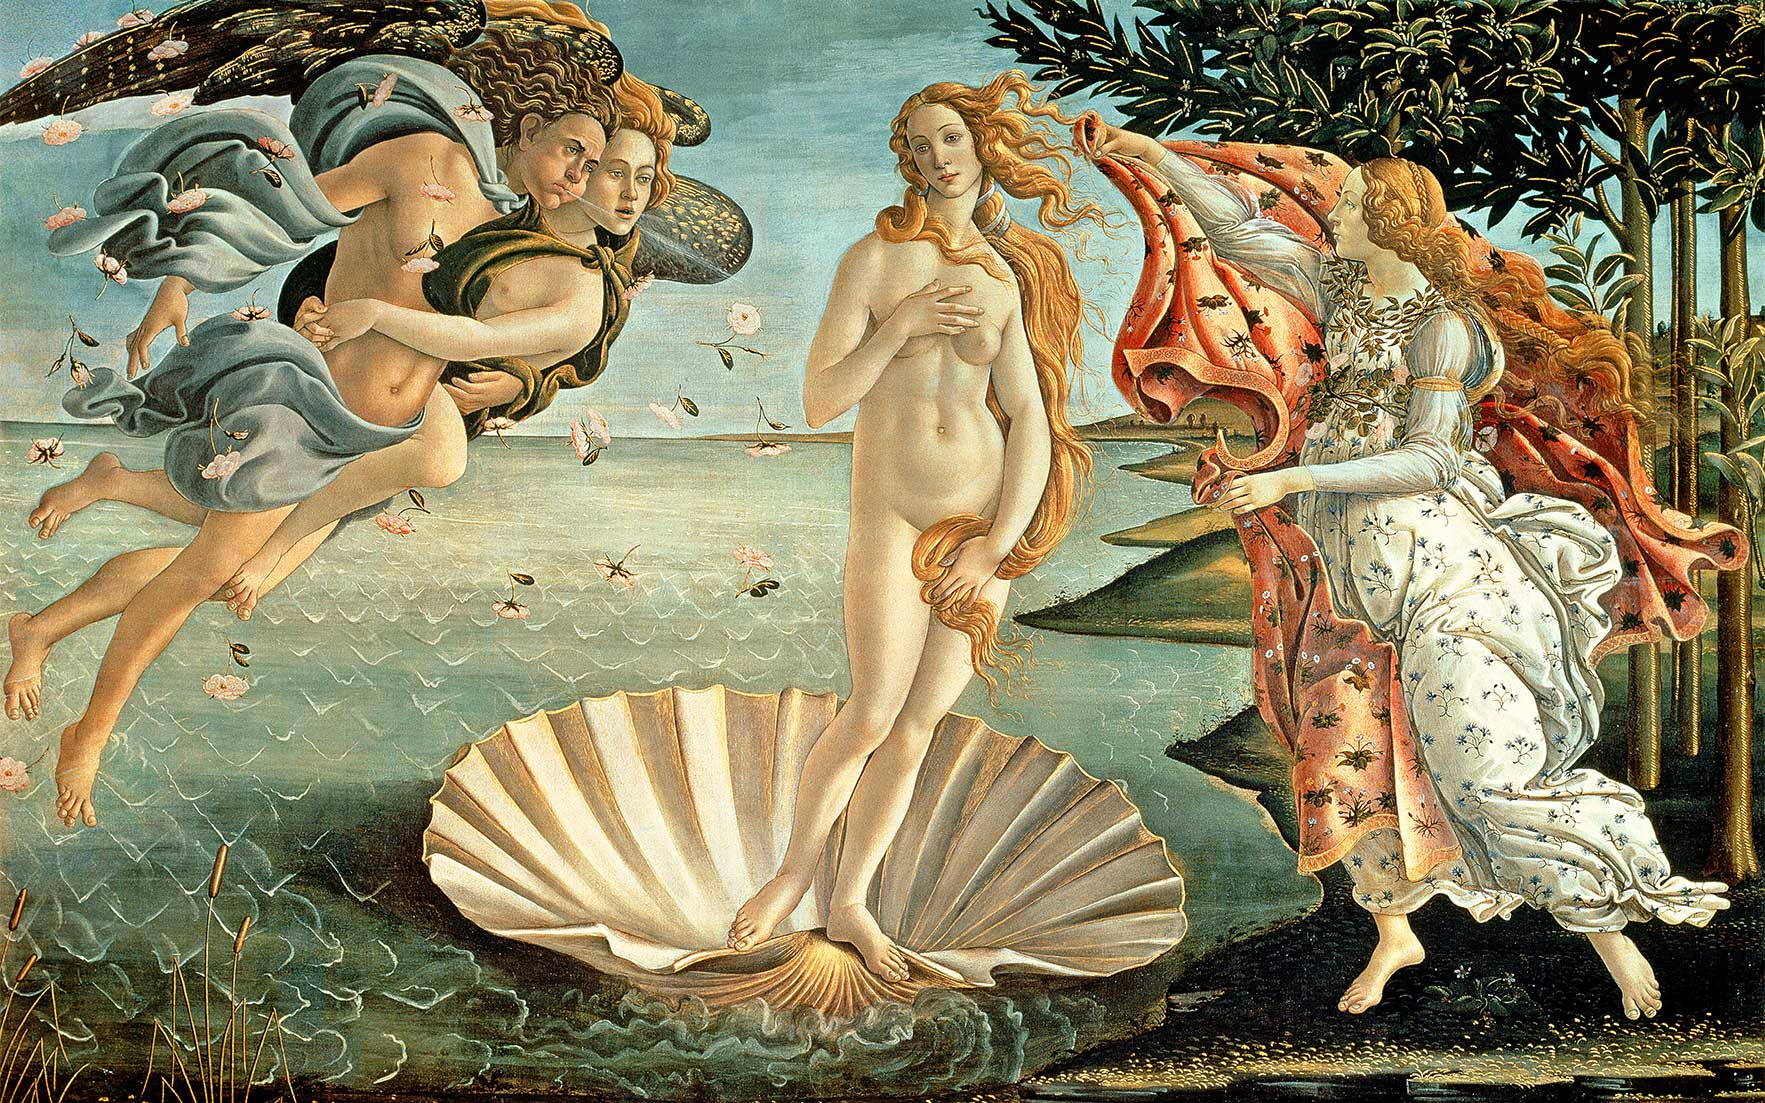 Main image Sandro Botticelli, The Birth of Venus, circa 1485. Galleria degli Uffizi, Florence, Italy  Bridgeman Images